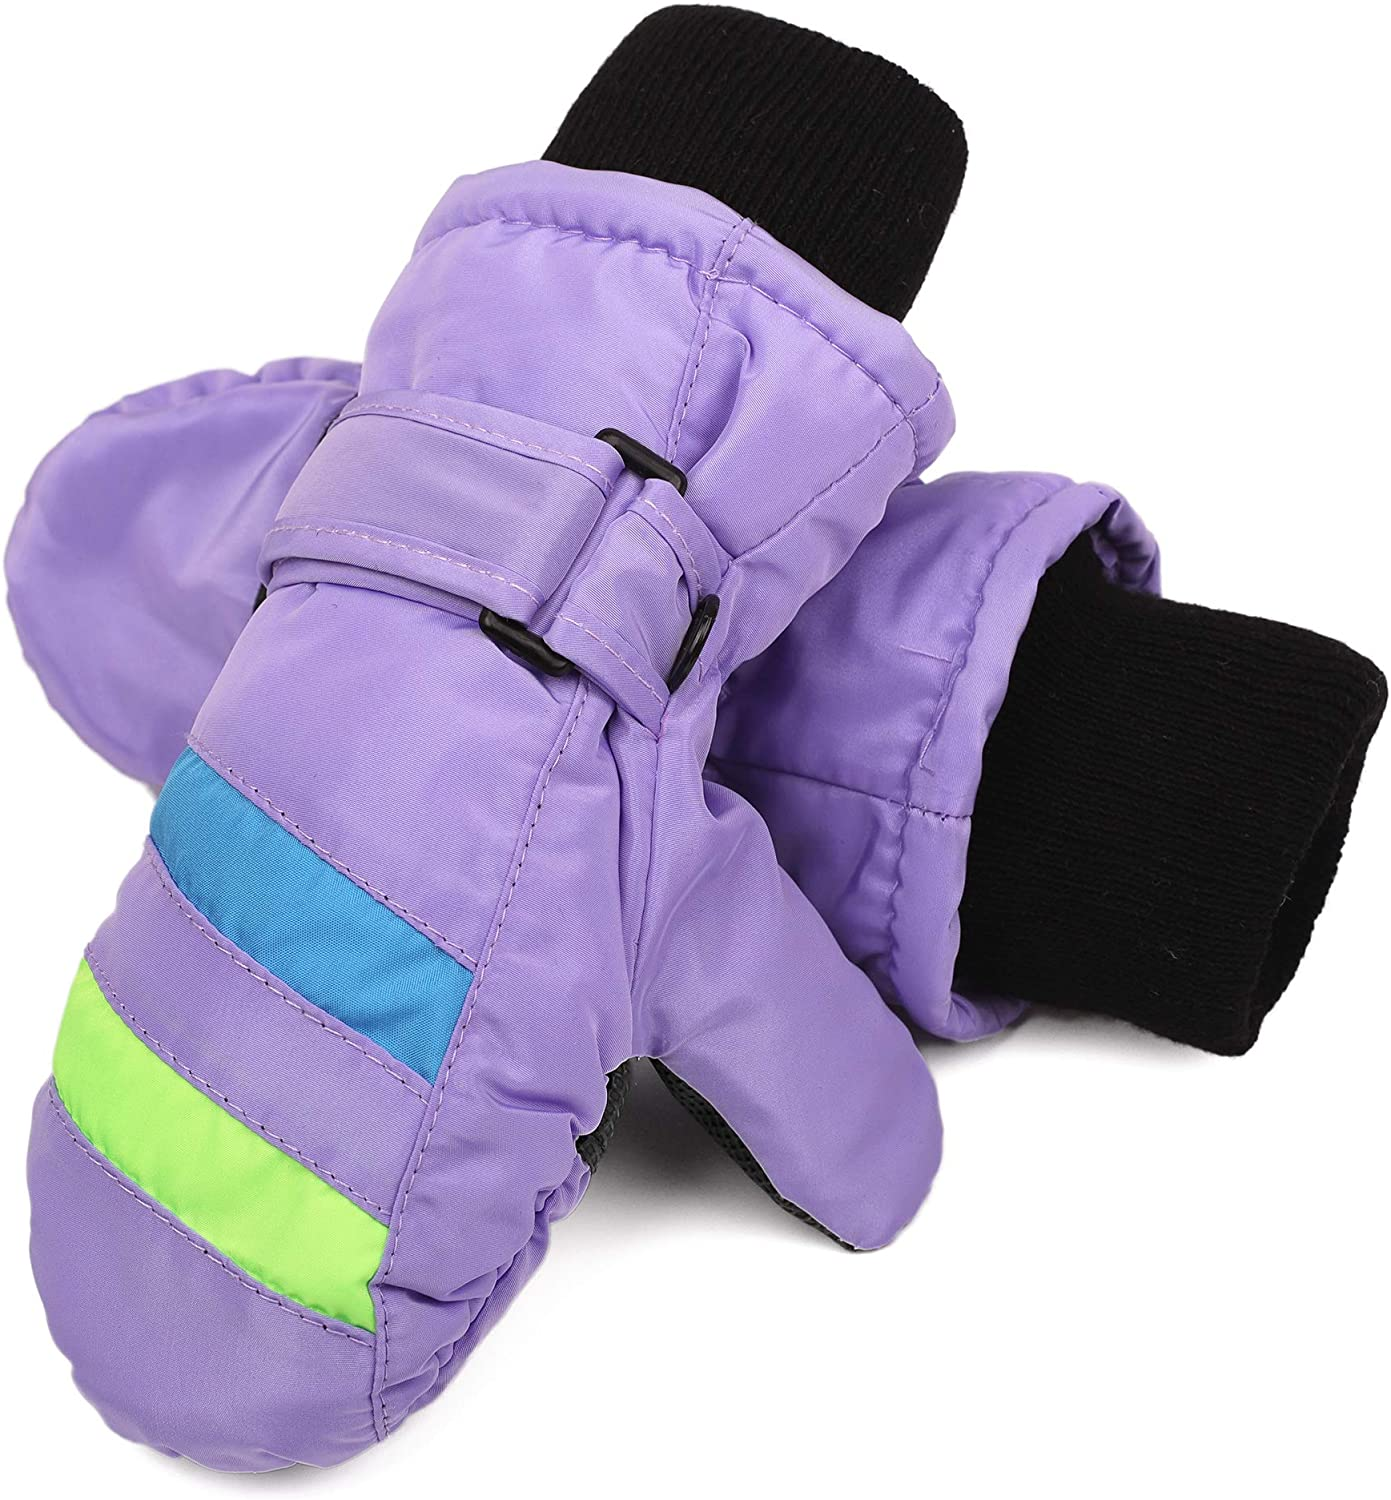 Flammi Kids Ski Mittens Fleece Lined Winter Snow Mittens Water-Resistant for Boys Girls (2-4 Years, Lavender): Clothing